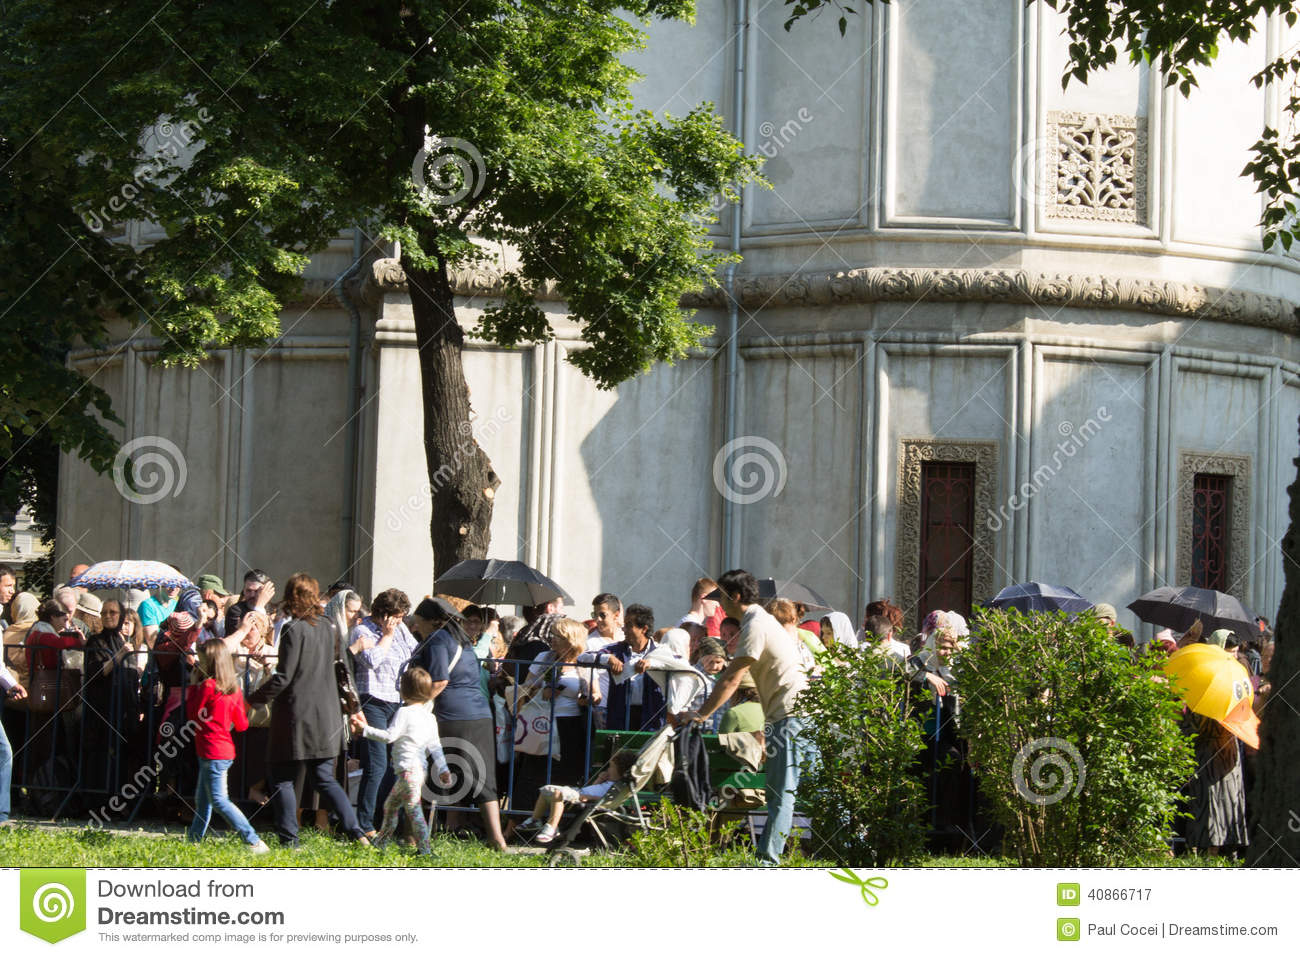 Constantine Brancoveanu procession: people waiting in line